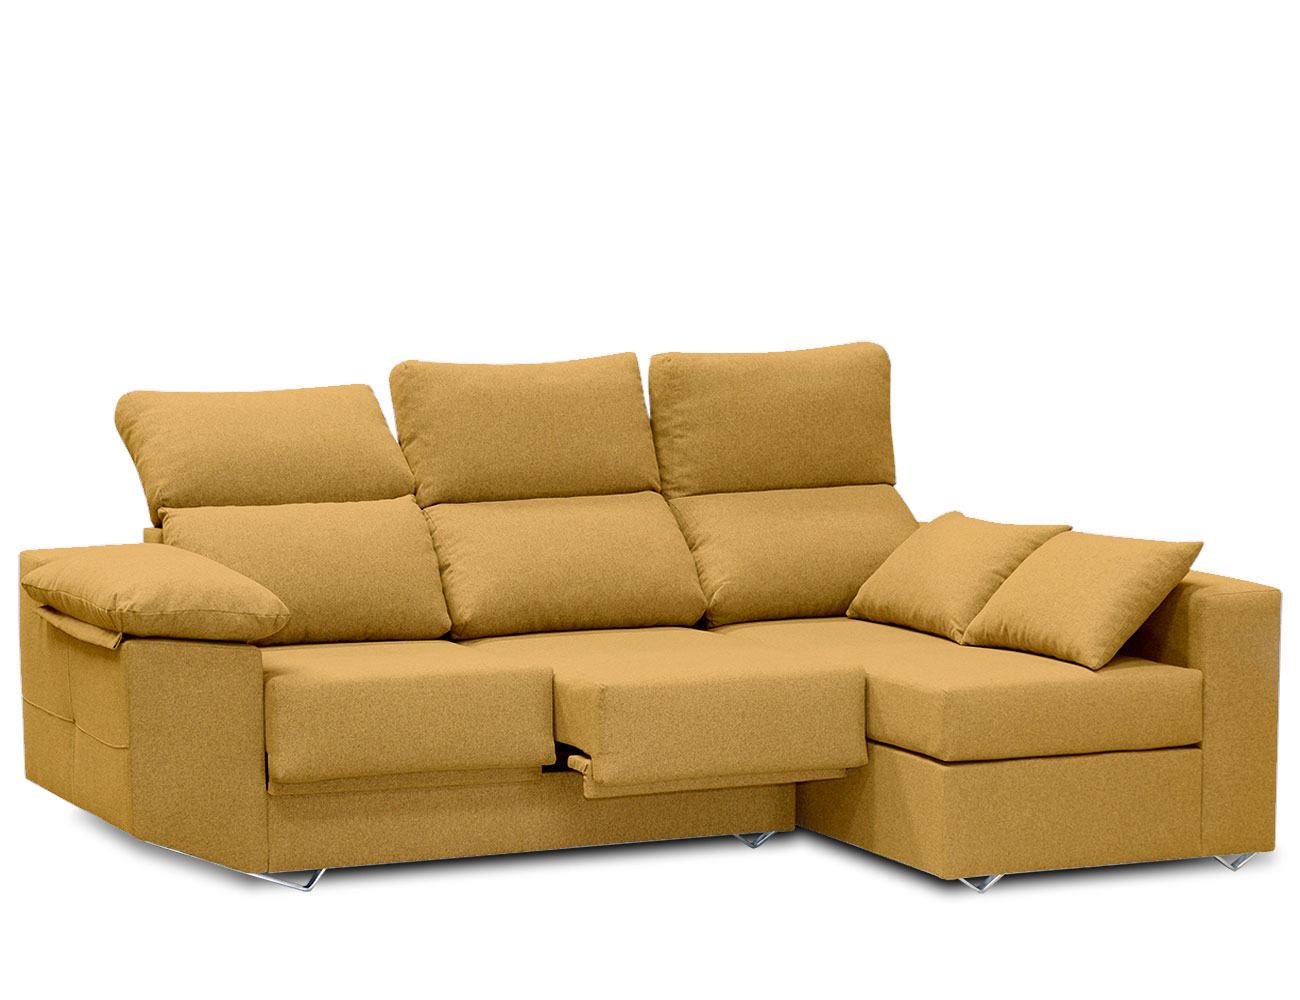 Sofa chaiselongue moderno mostaza 1